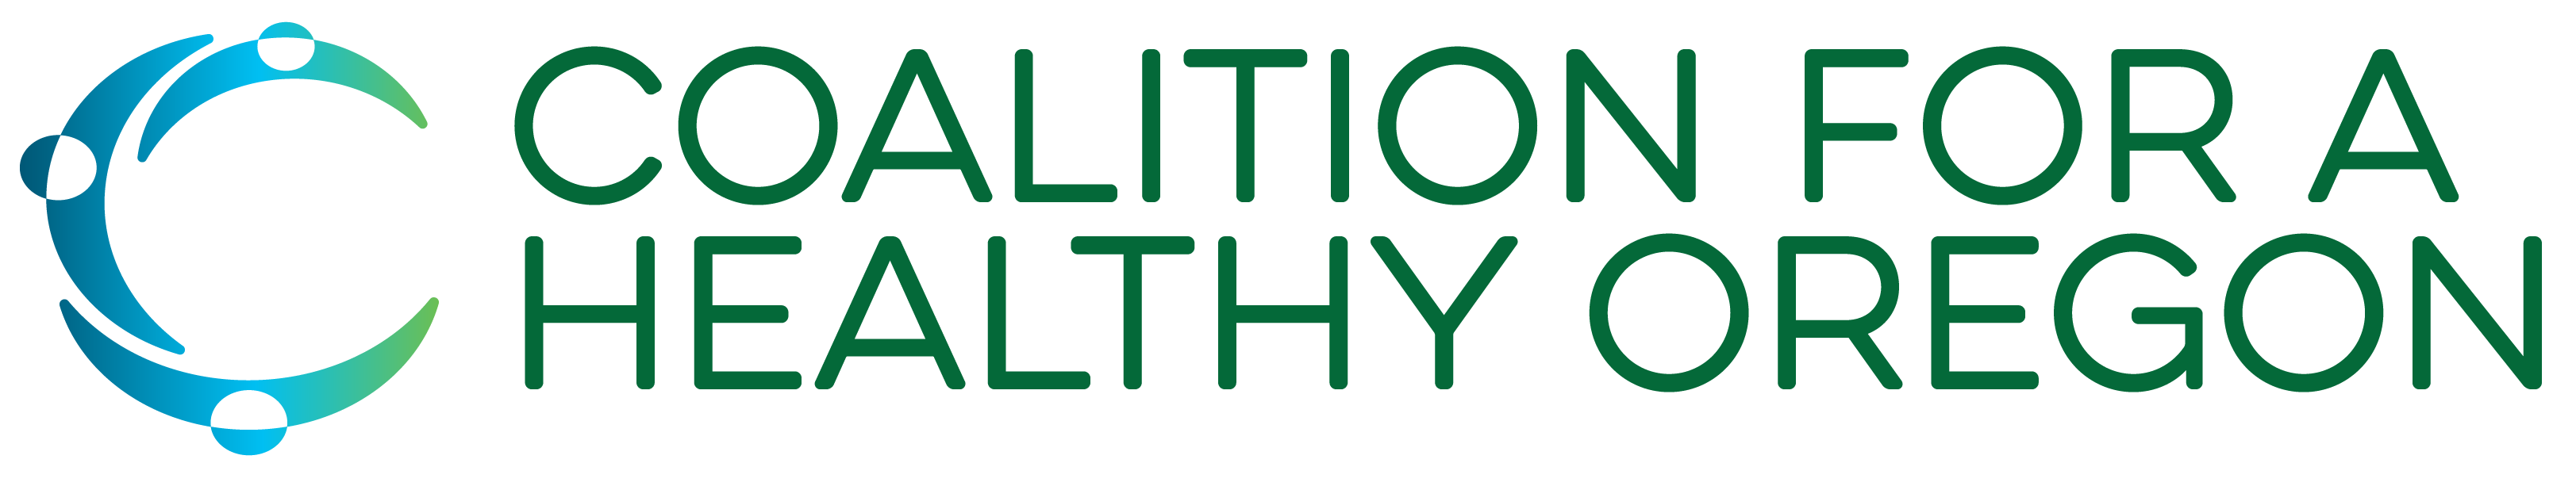 Coalition for a Healthy Oregon